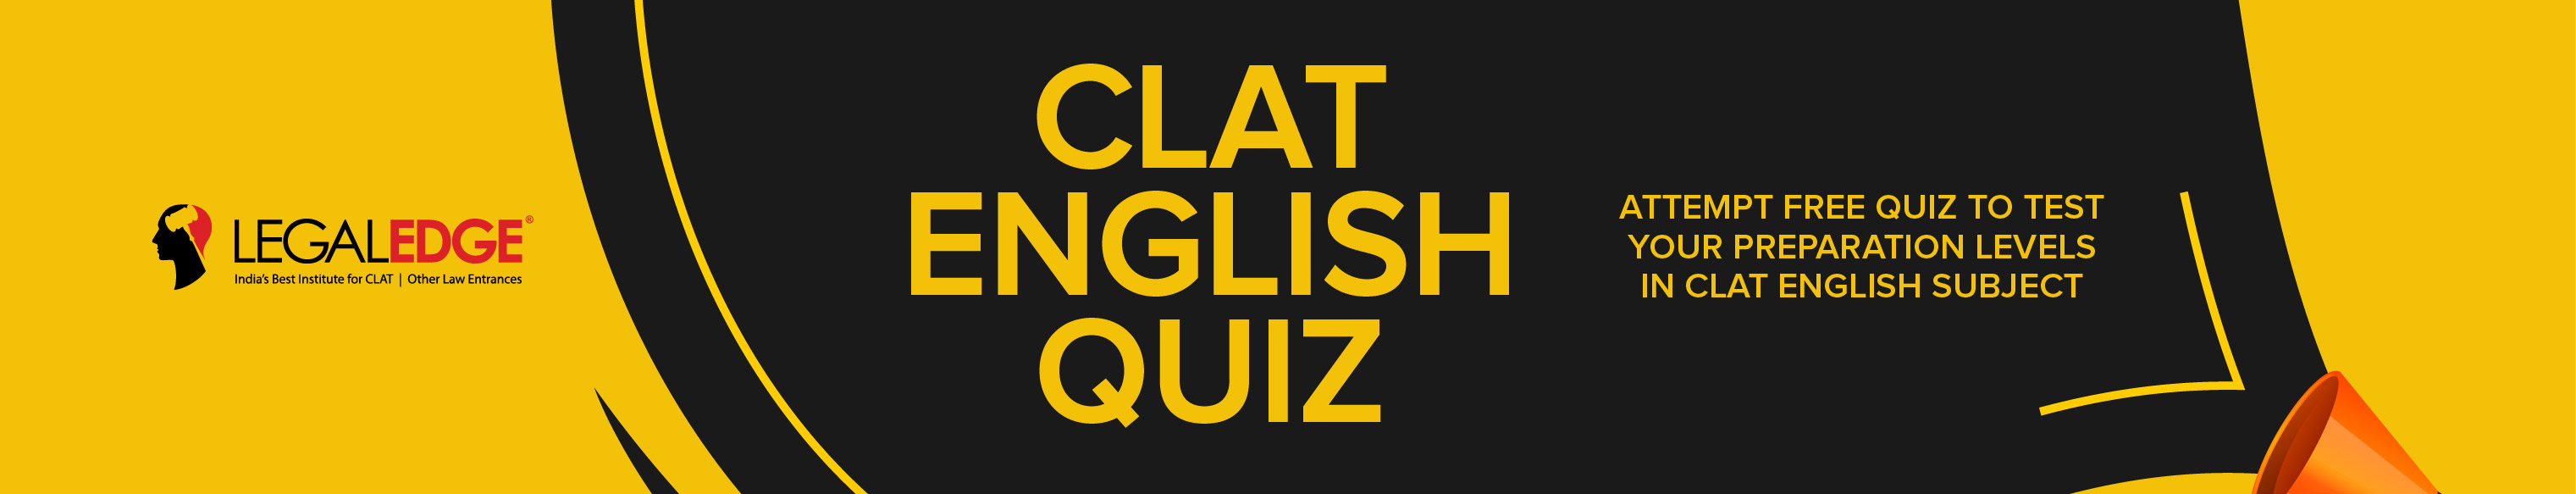 clat english with comprehension